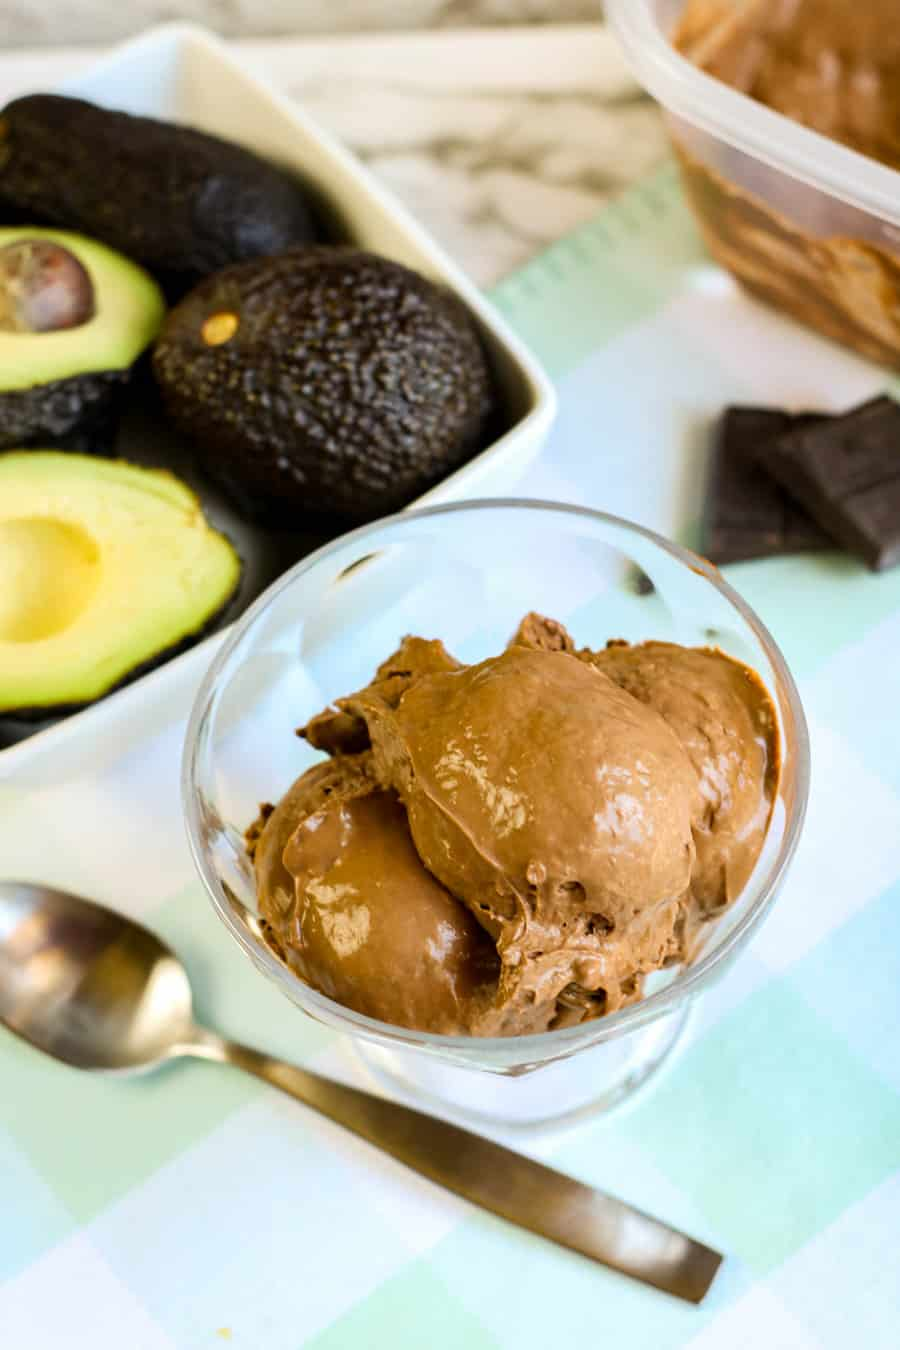 chocolate avocado ice cream in glass dish with avocados and chocolate in the background